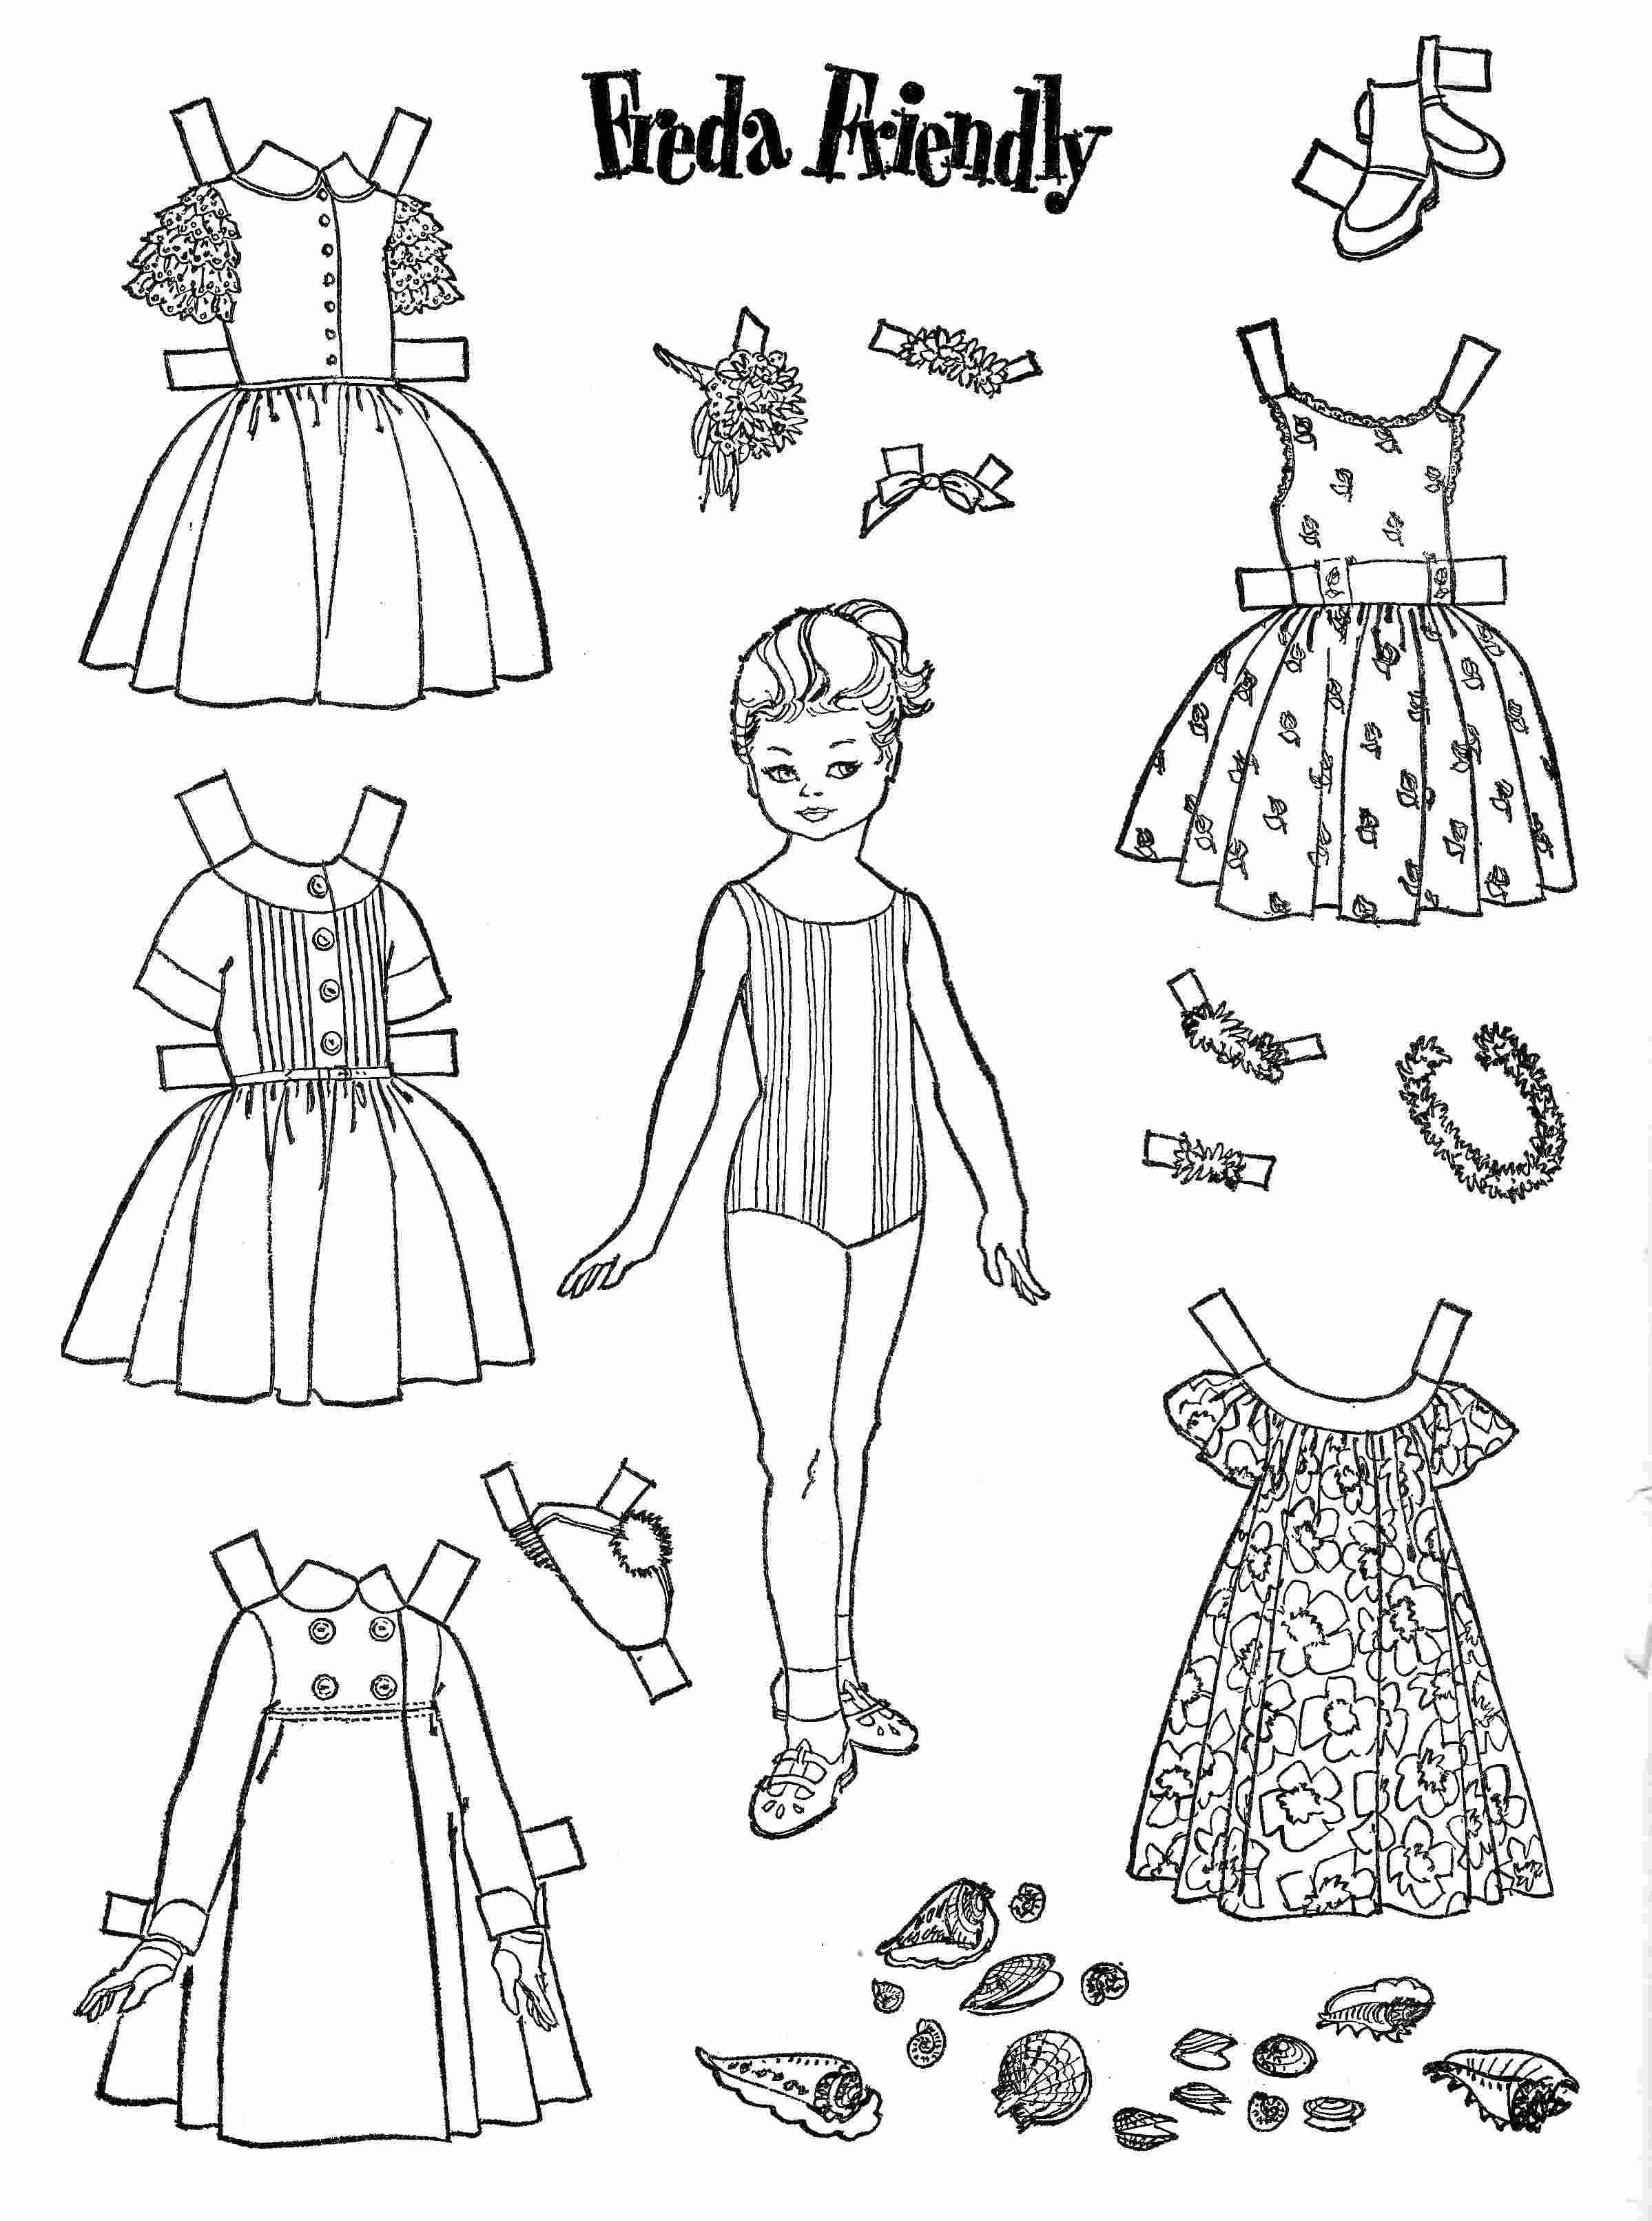 dress up dolls printable outlines of dress up dolls different colountries paper up dress dolls printable